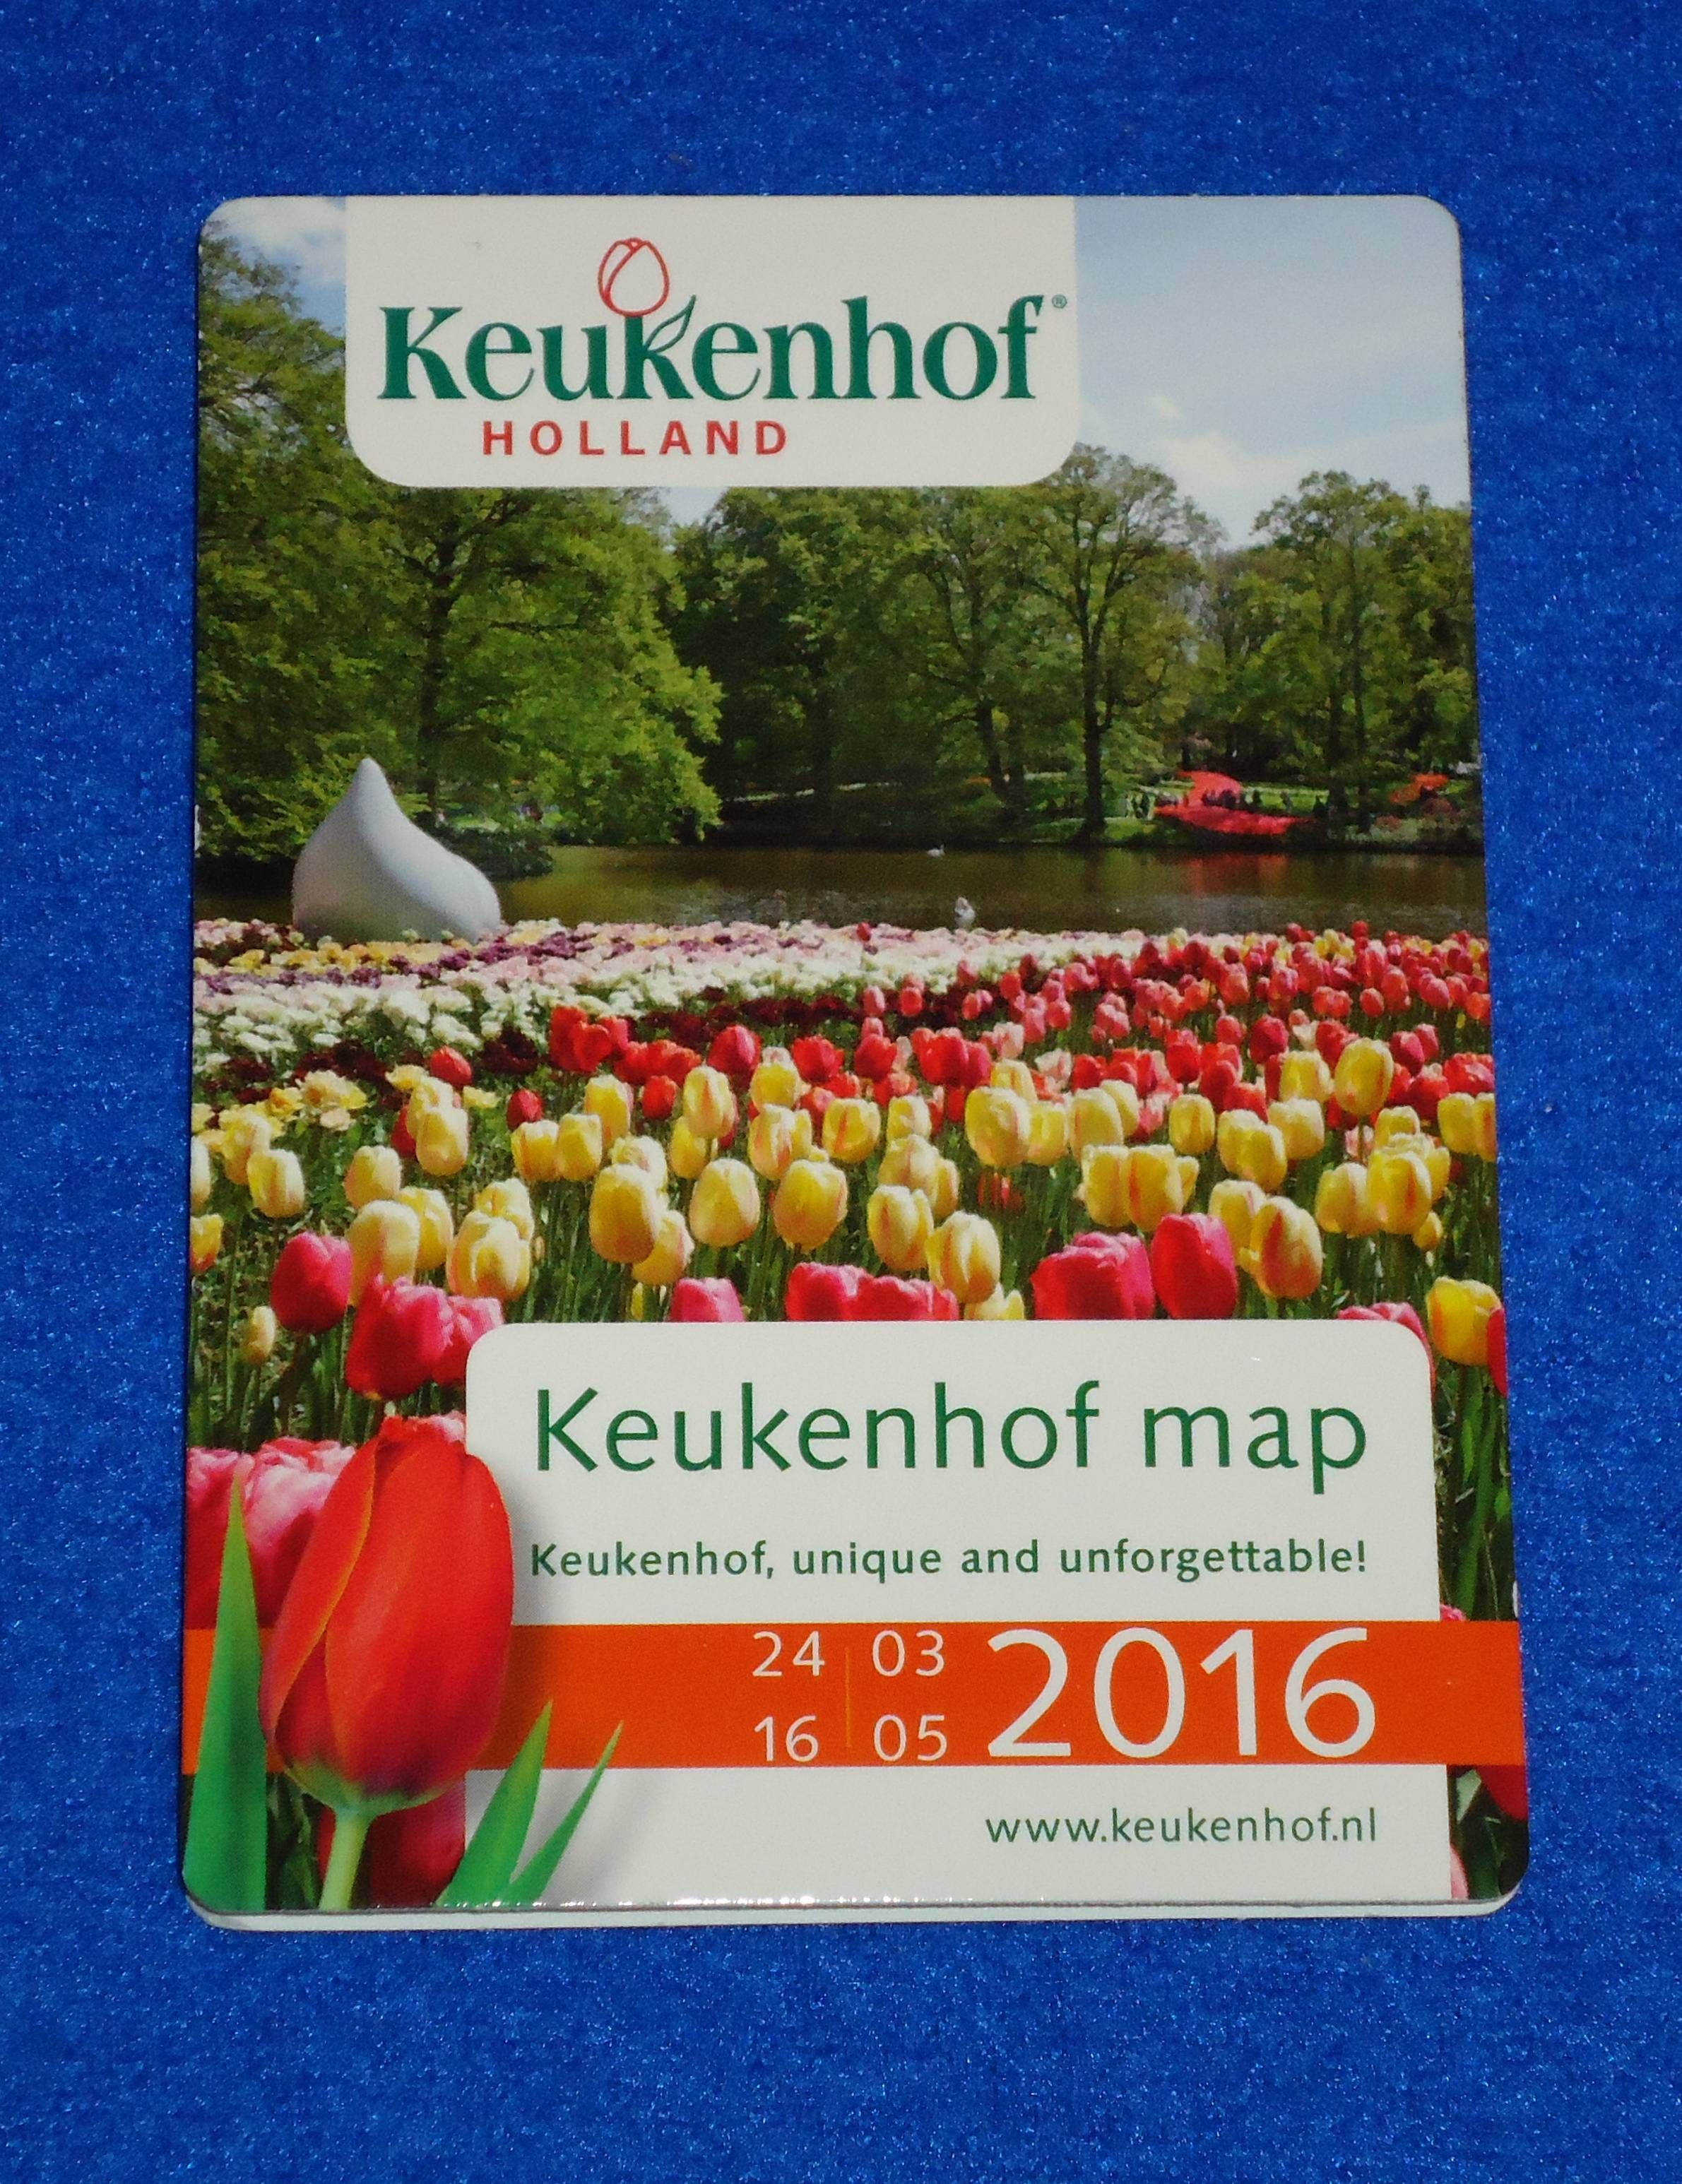 ND NEW* KEUKENHOF HOLLAND BROCHURE MAP KITCHEN GARDEN FLOWER ... Keukenhof Map on north holland map, het loo palace map, van gogh museum map, limburg map, rijksmuseum map, hoek van holland map, utrecht map, randstad map, amersfoort map, den haag map, lisse holland map,